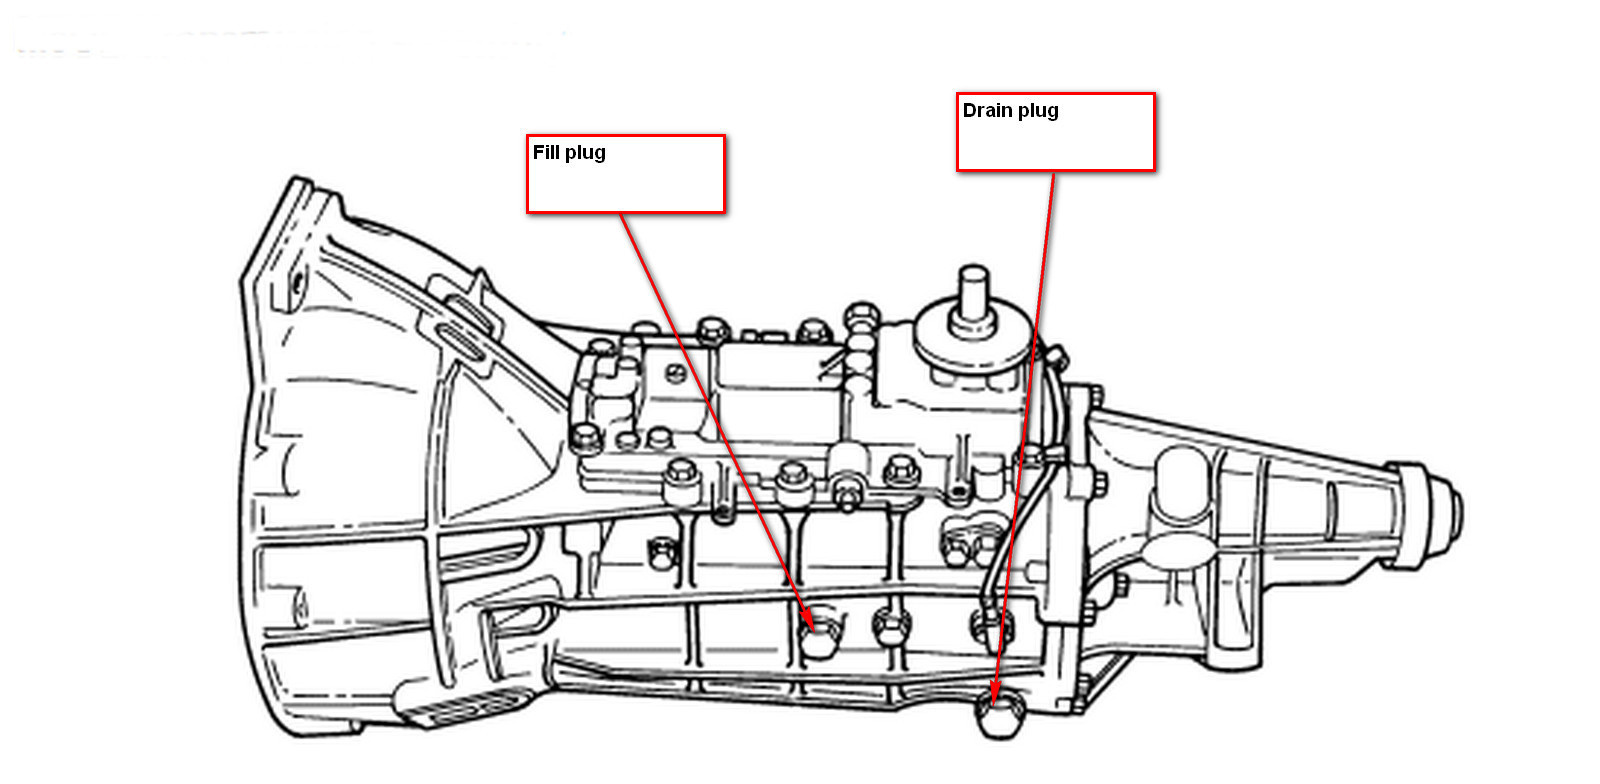 1992 ford ranger manual transmission diagram